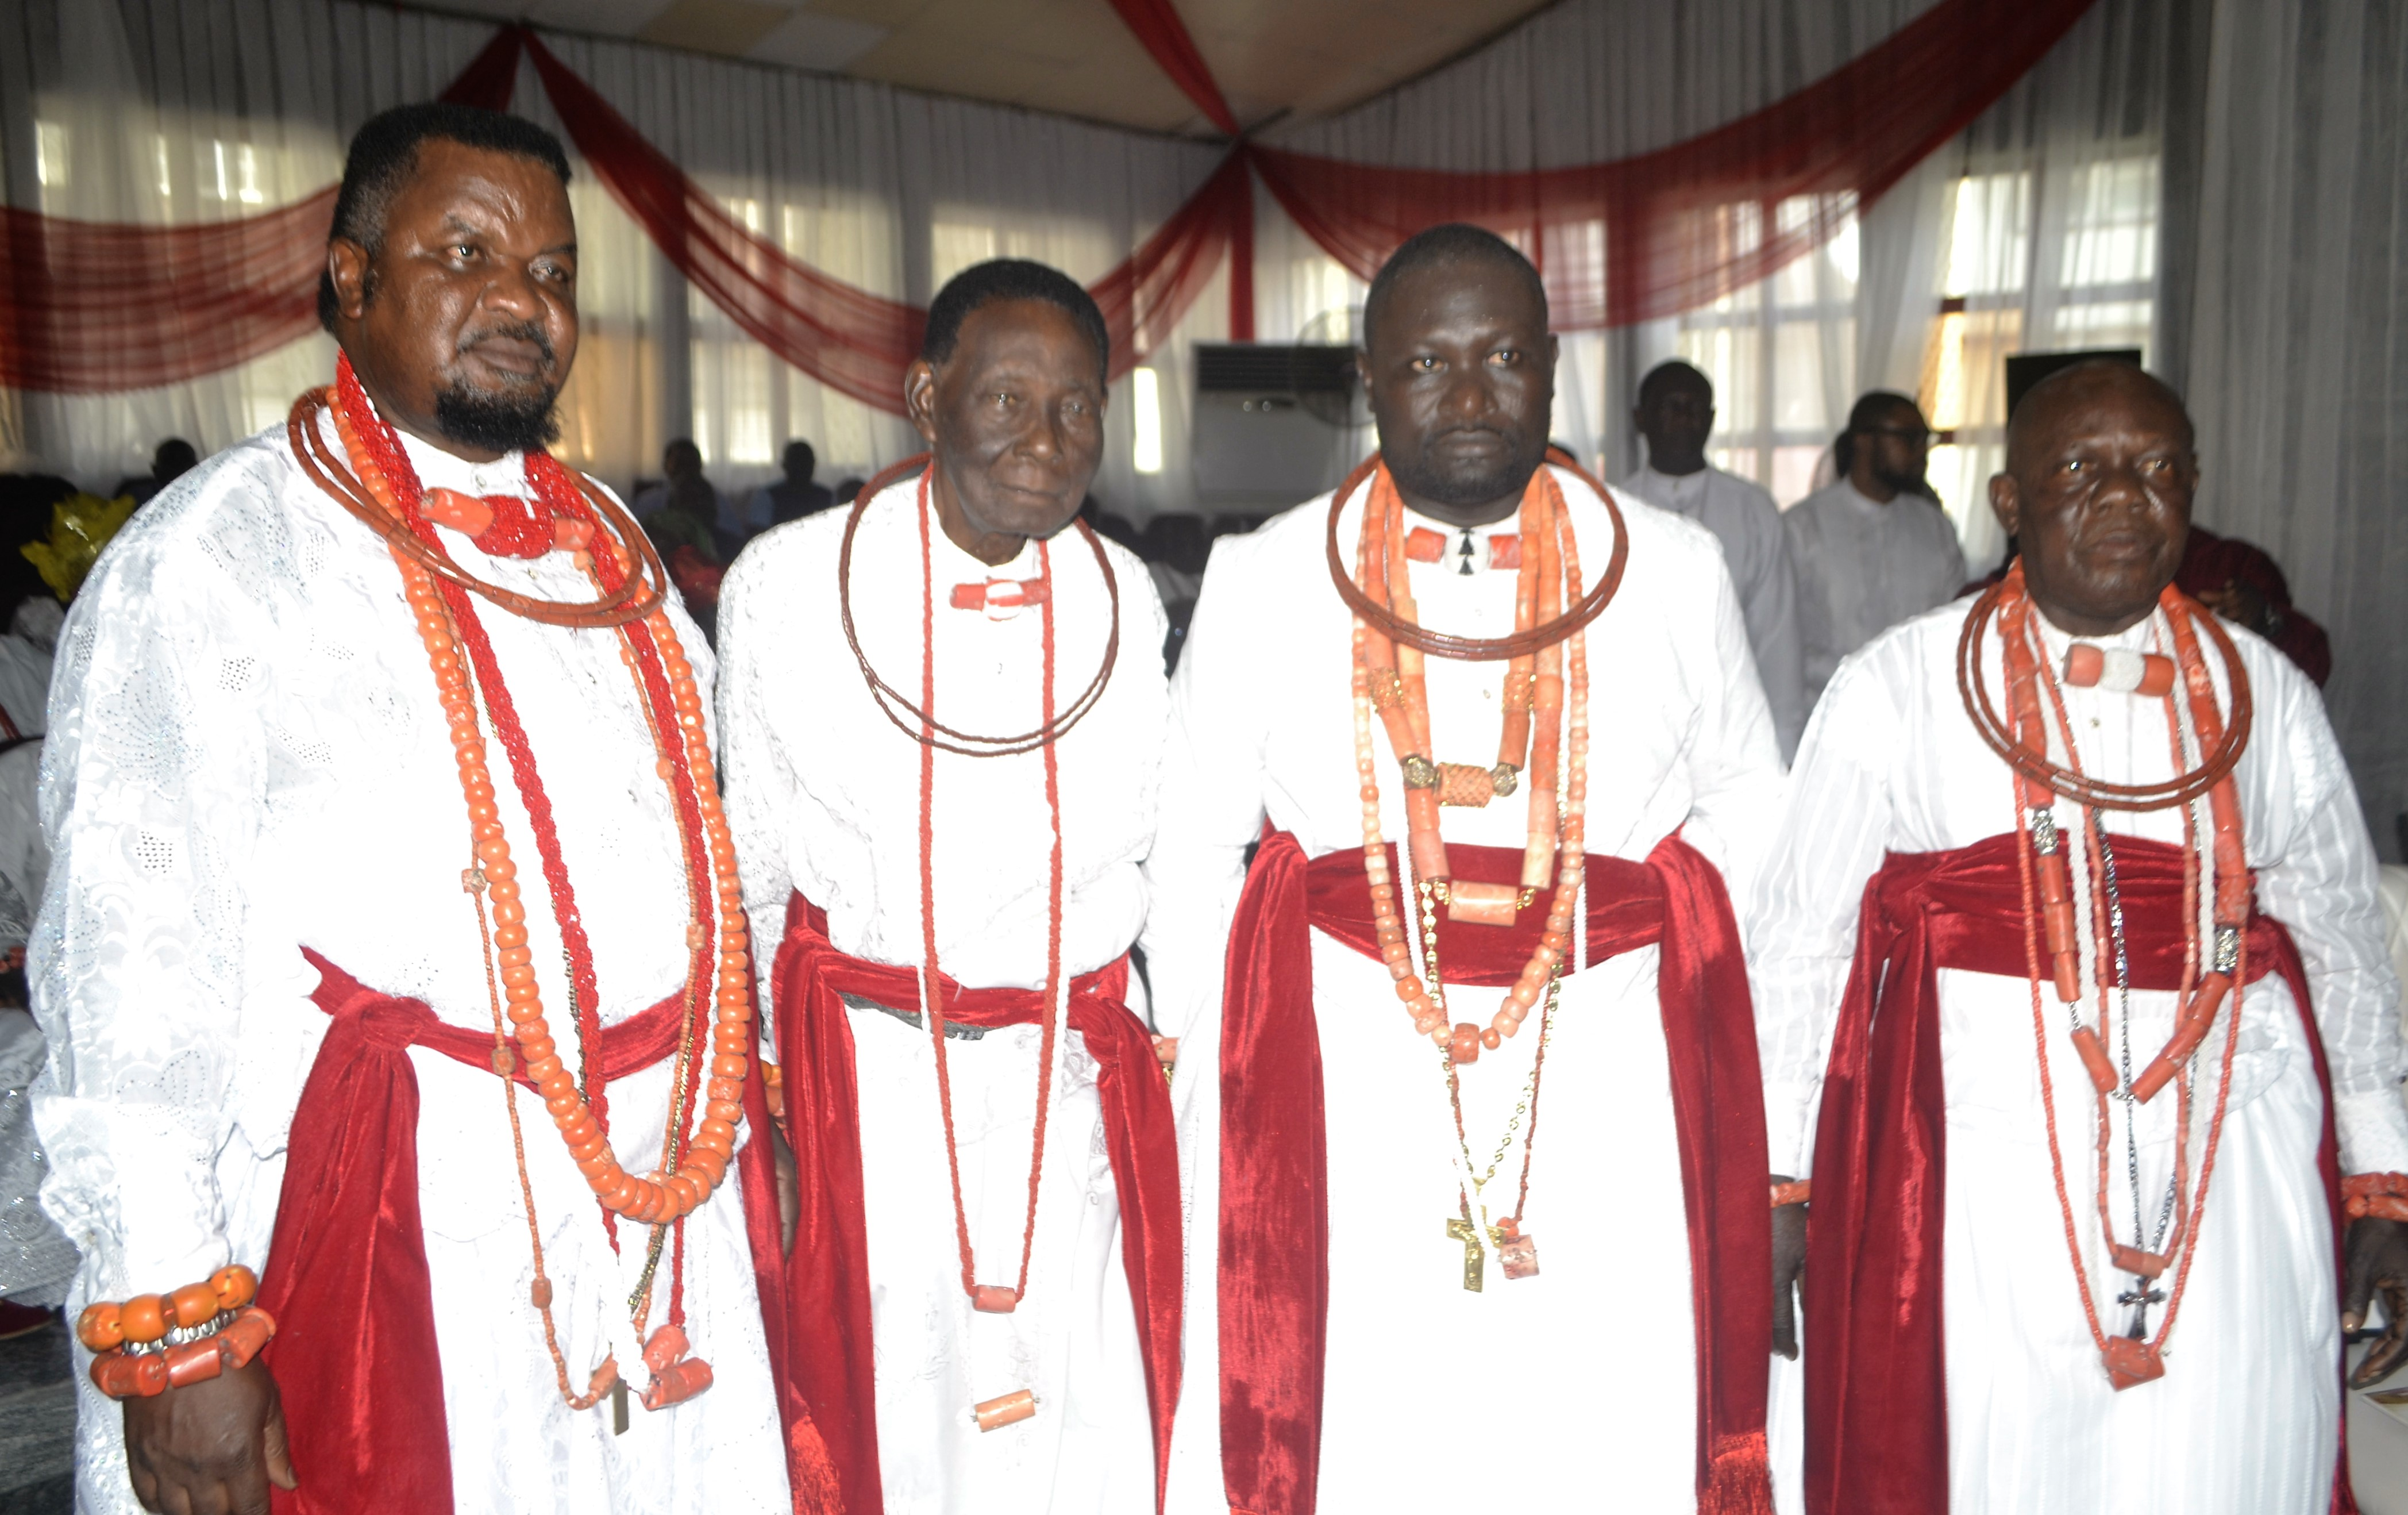 The Grand Installation of Chief Ayirimi Emami as Ologbotsere of Warri